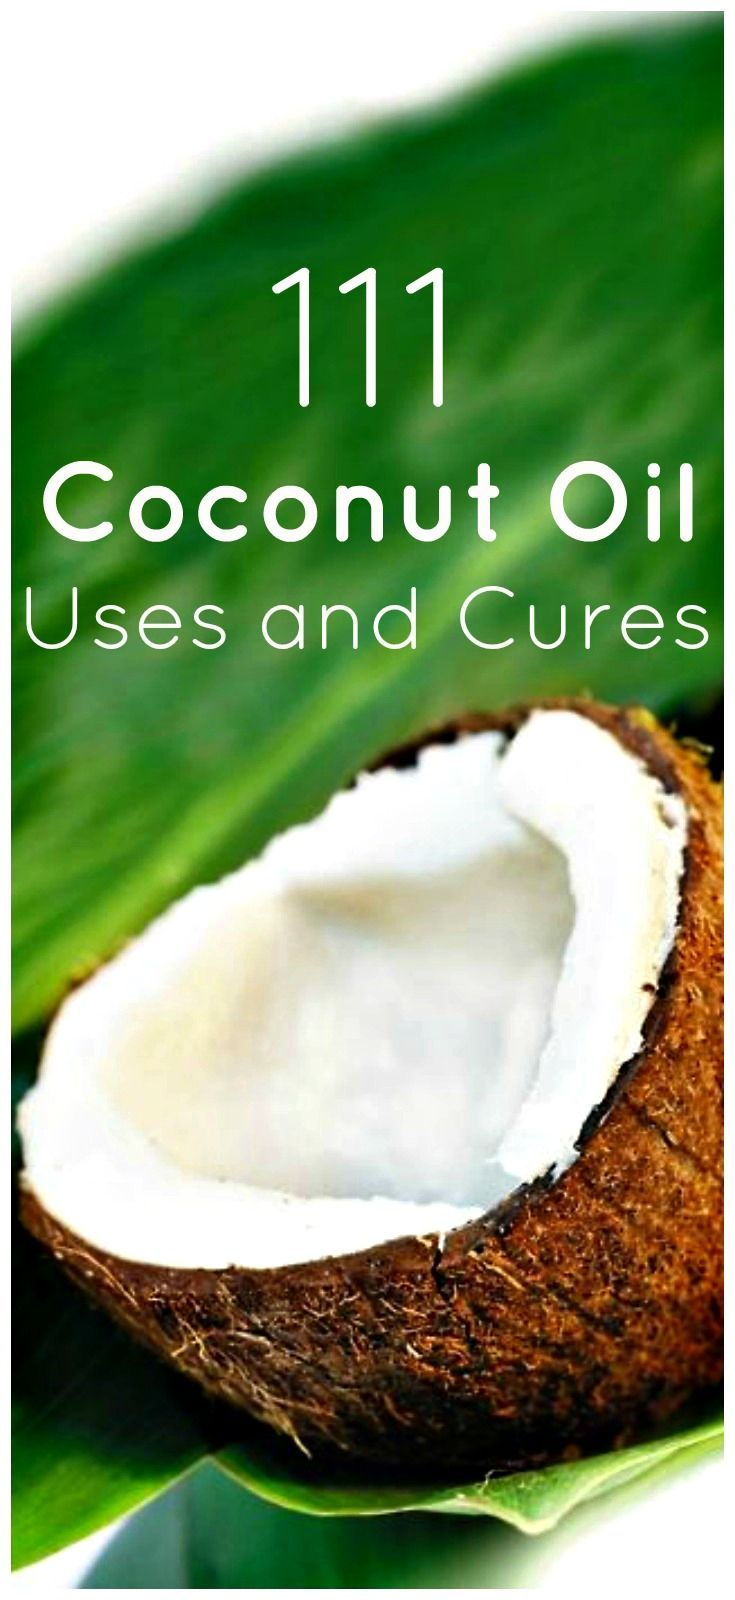 Coconut oil is very popular lately. People have put together hundreds of different uses for this beneficial oil. It has earned his fame for a good reason.